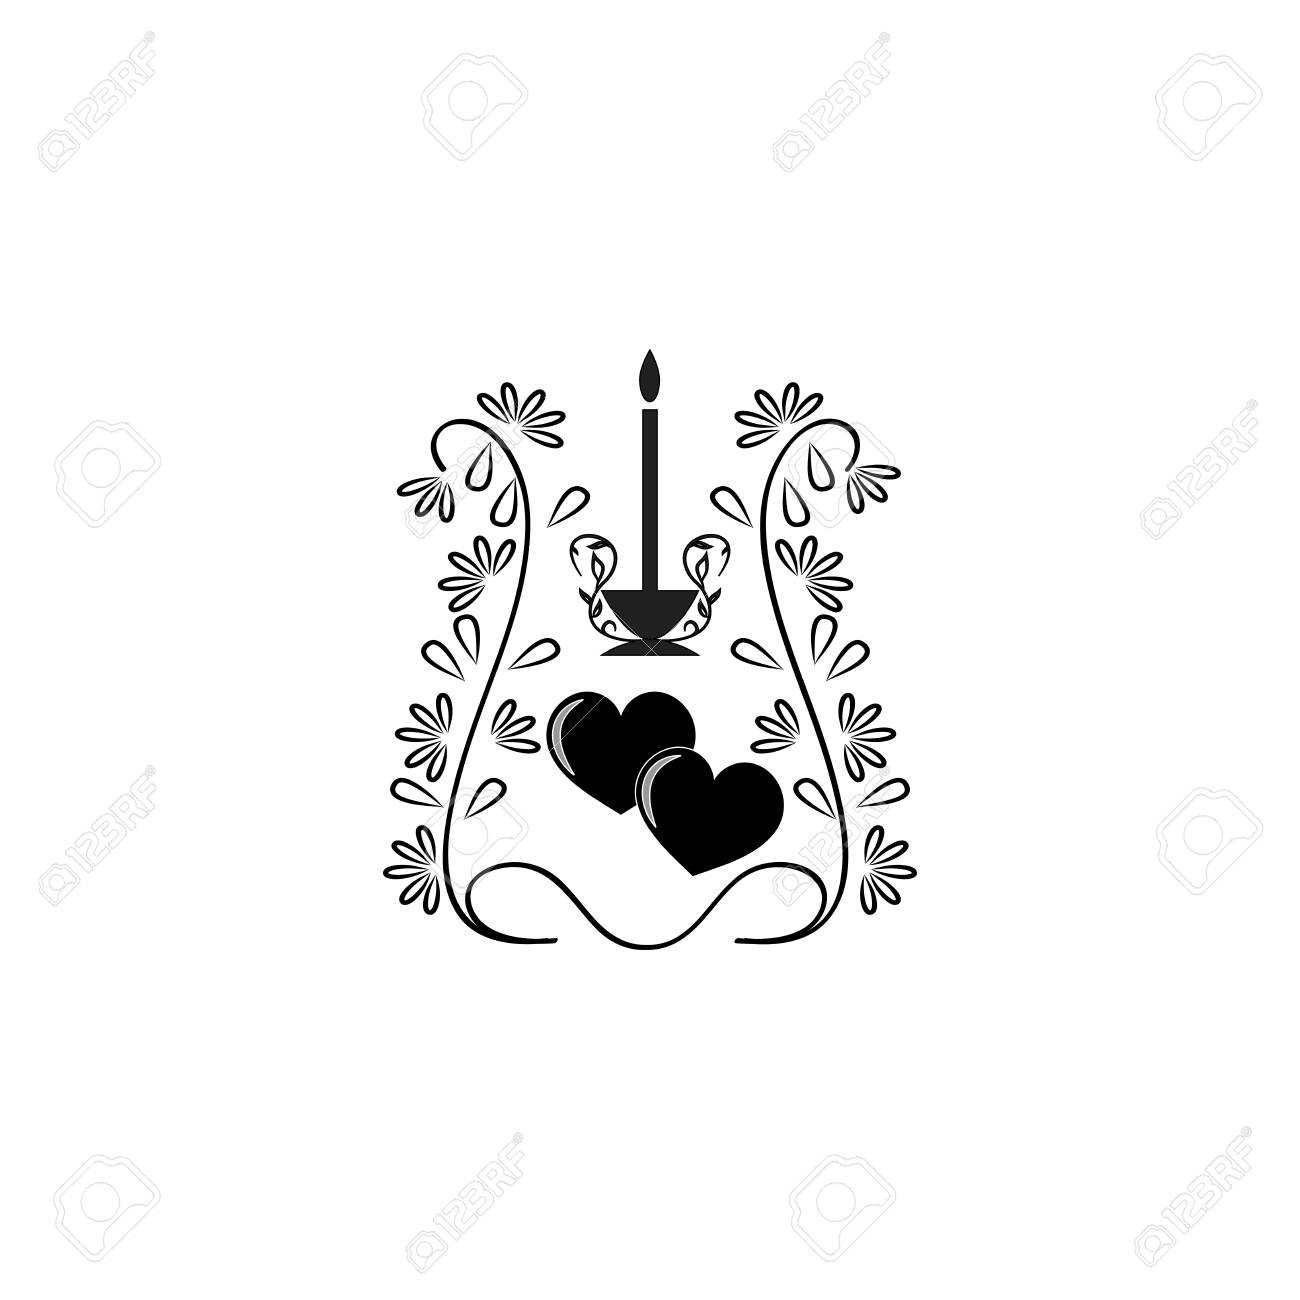 Heart And Candle Silhouette Fashion Romantic Graphic Design Element